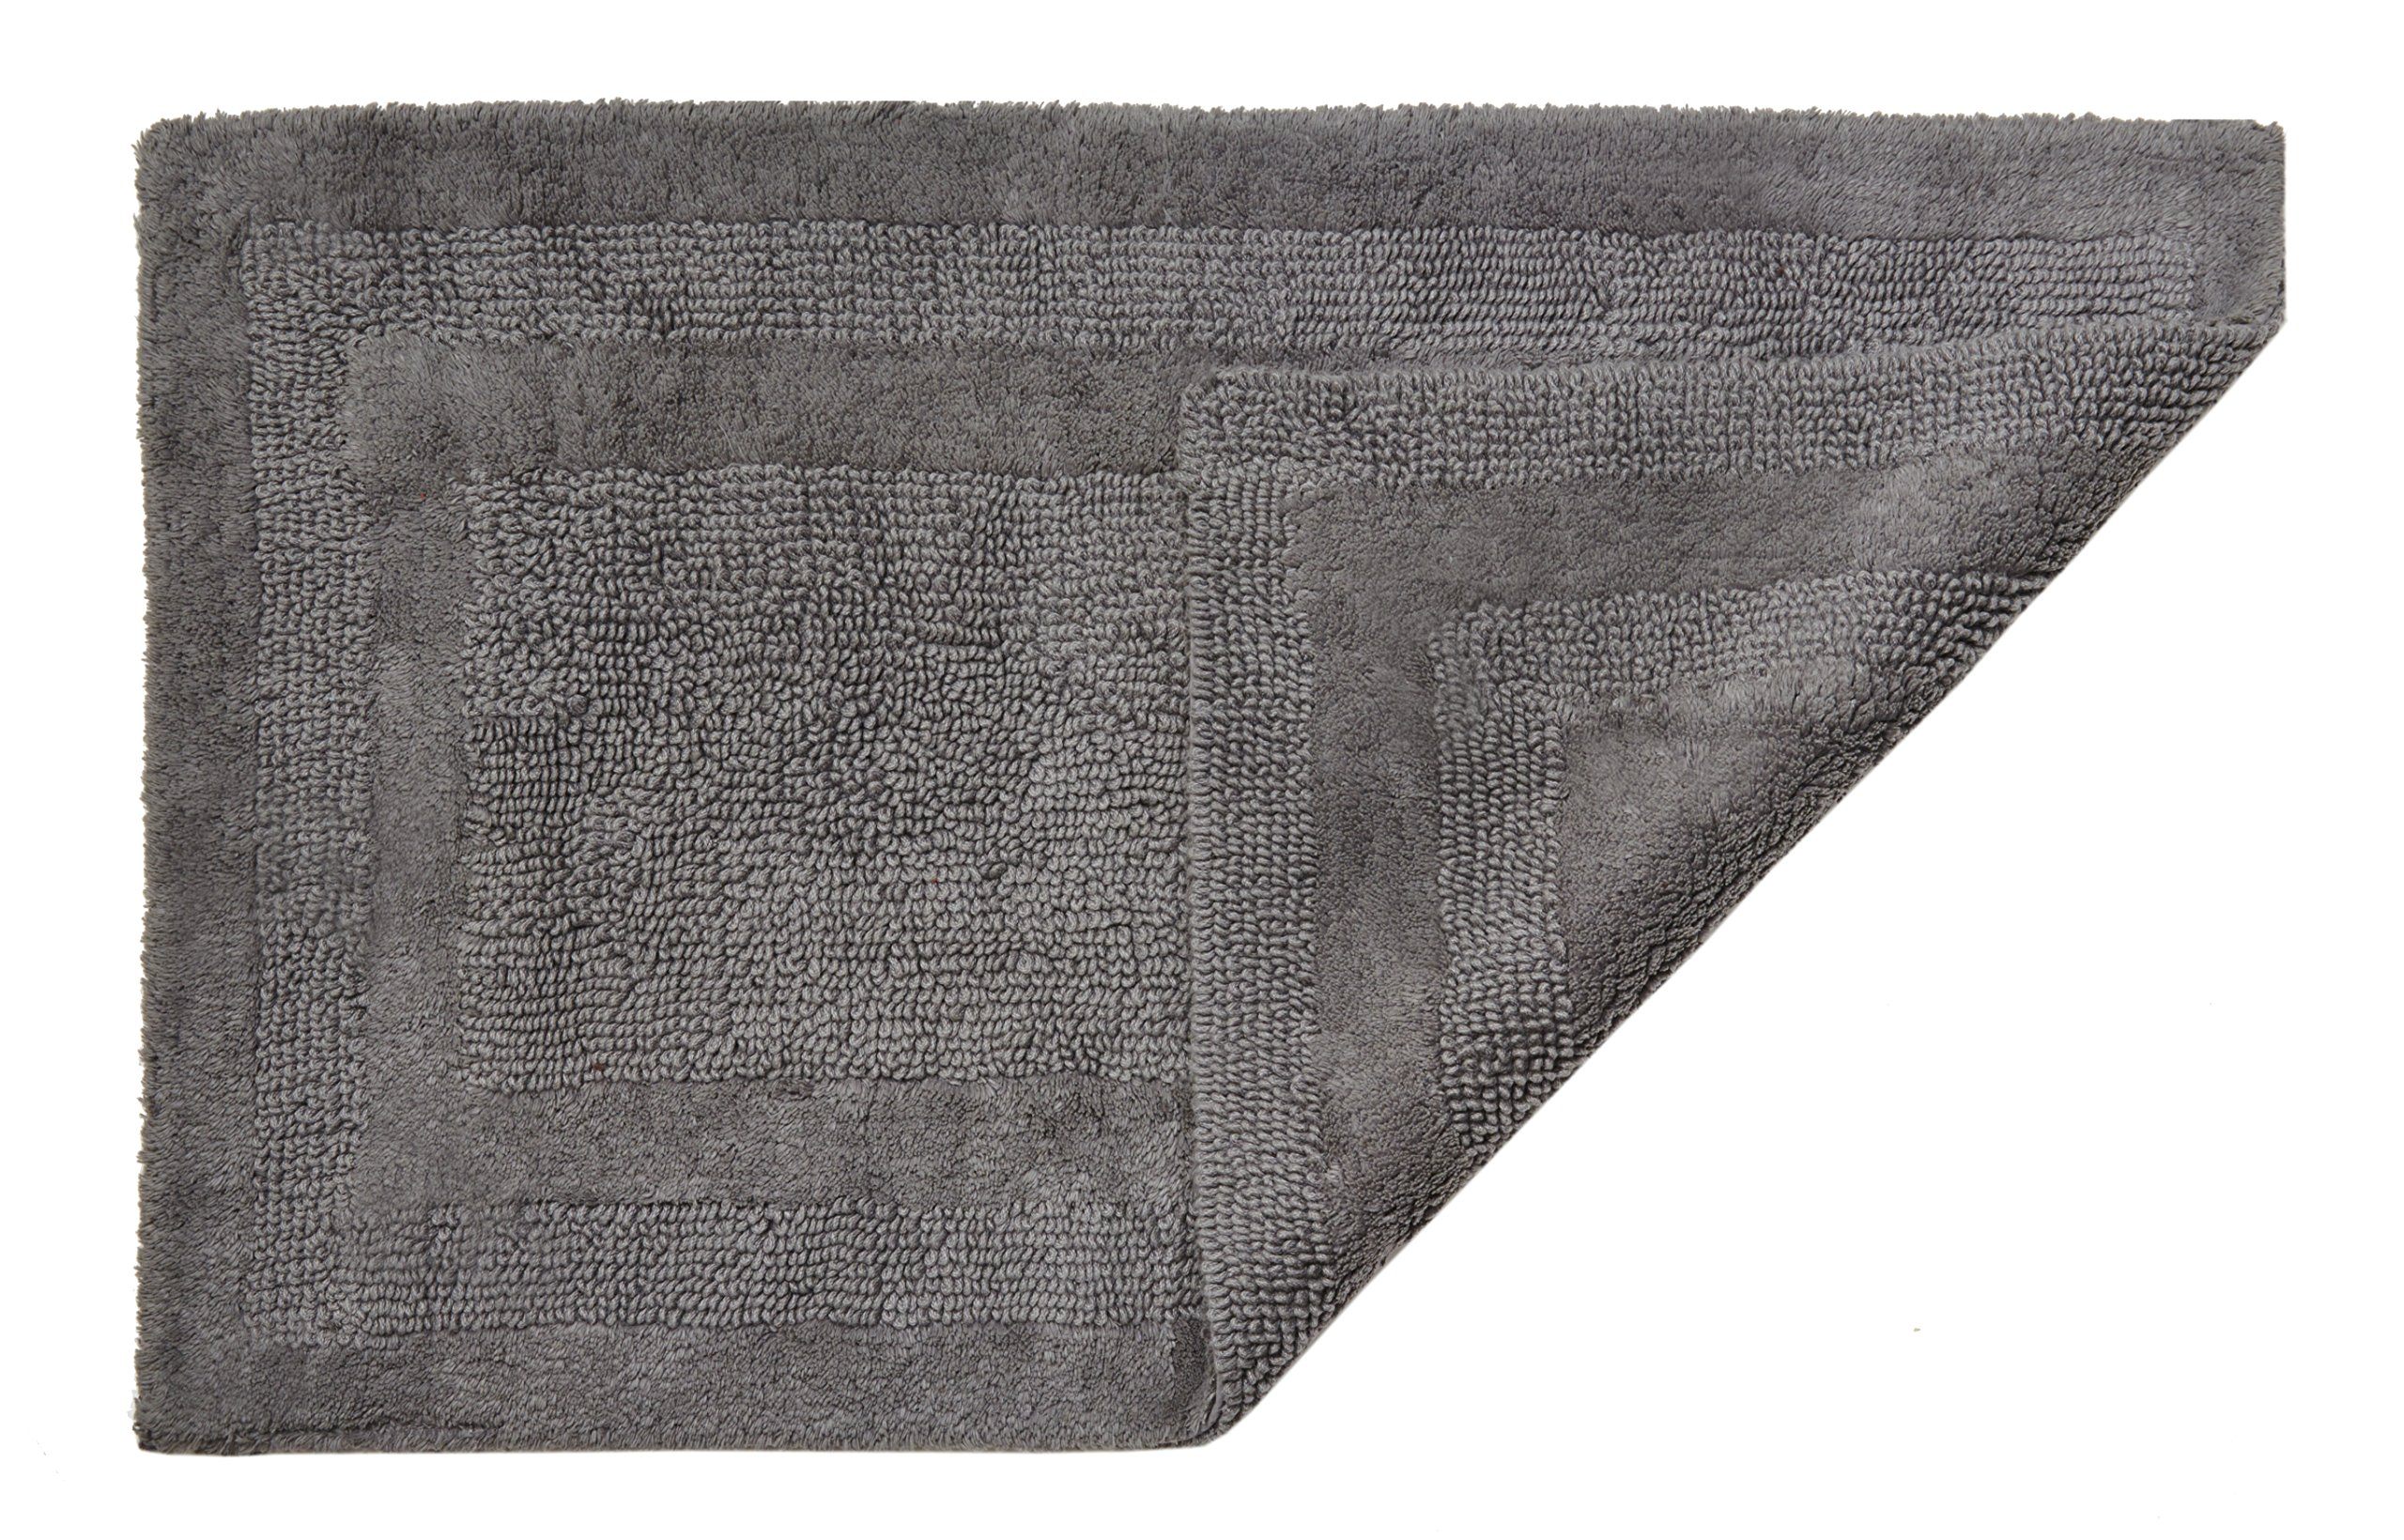 HygroSoft Reversible Fast Drying and Absorbent Bath Rug, 17 by 24-Inch, Pewter